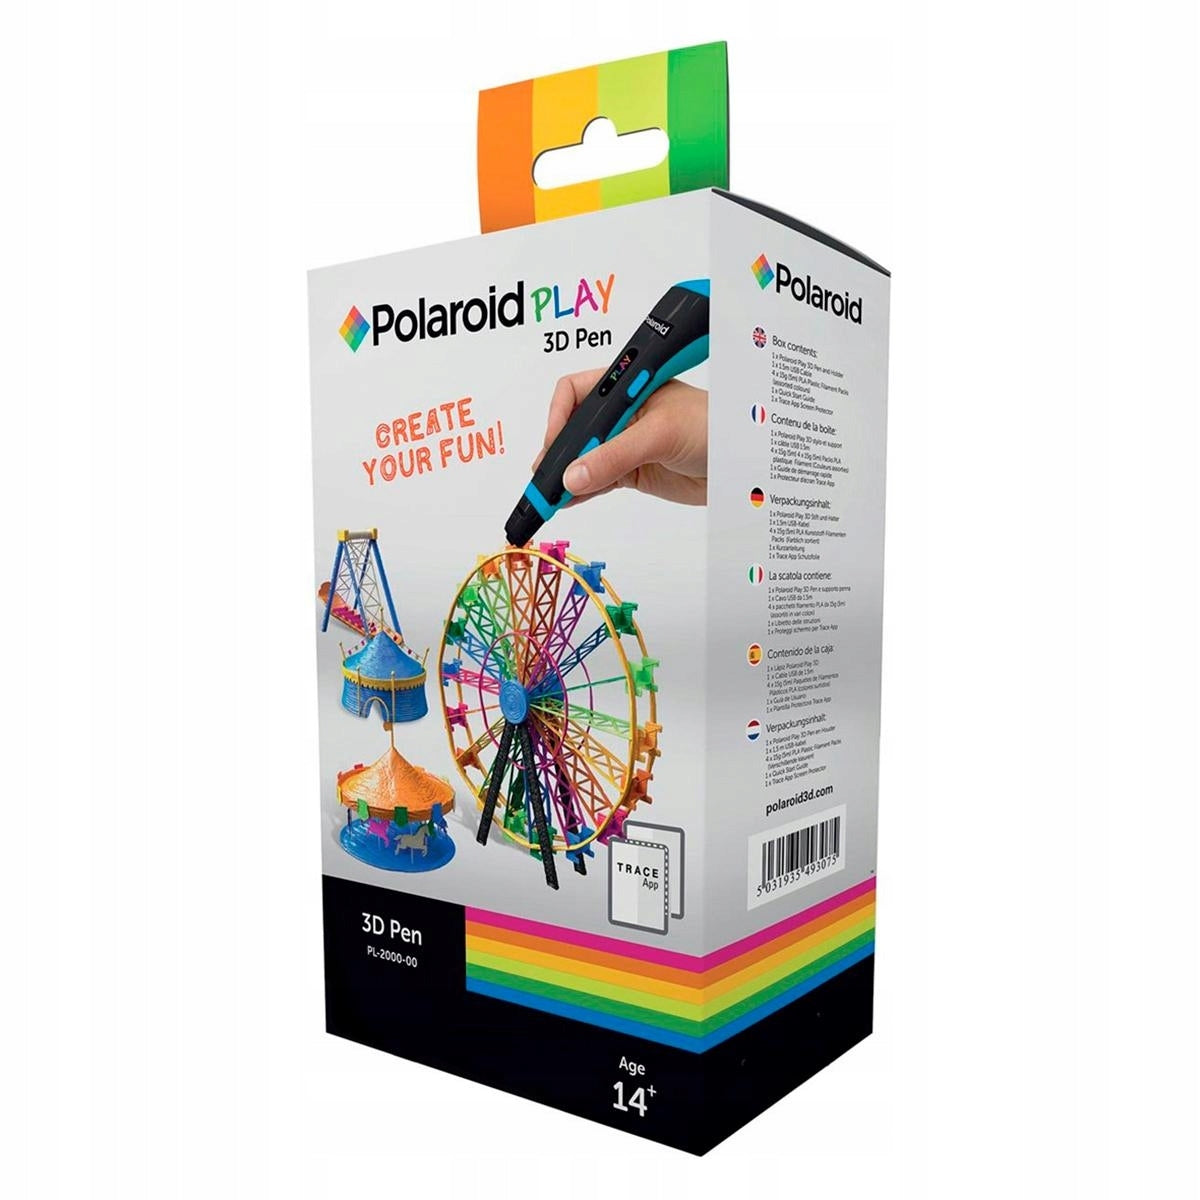 Polaroid Play 3D Pen Boxed